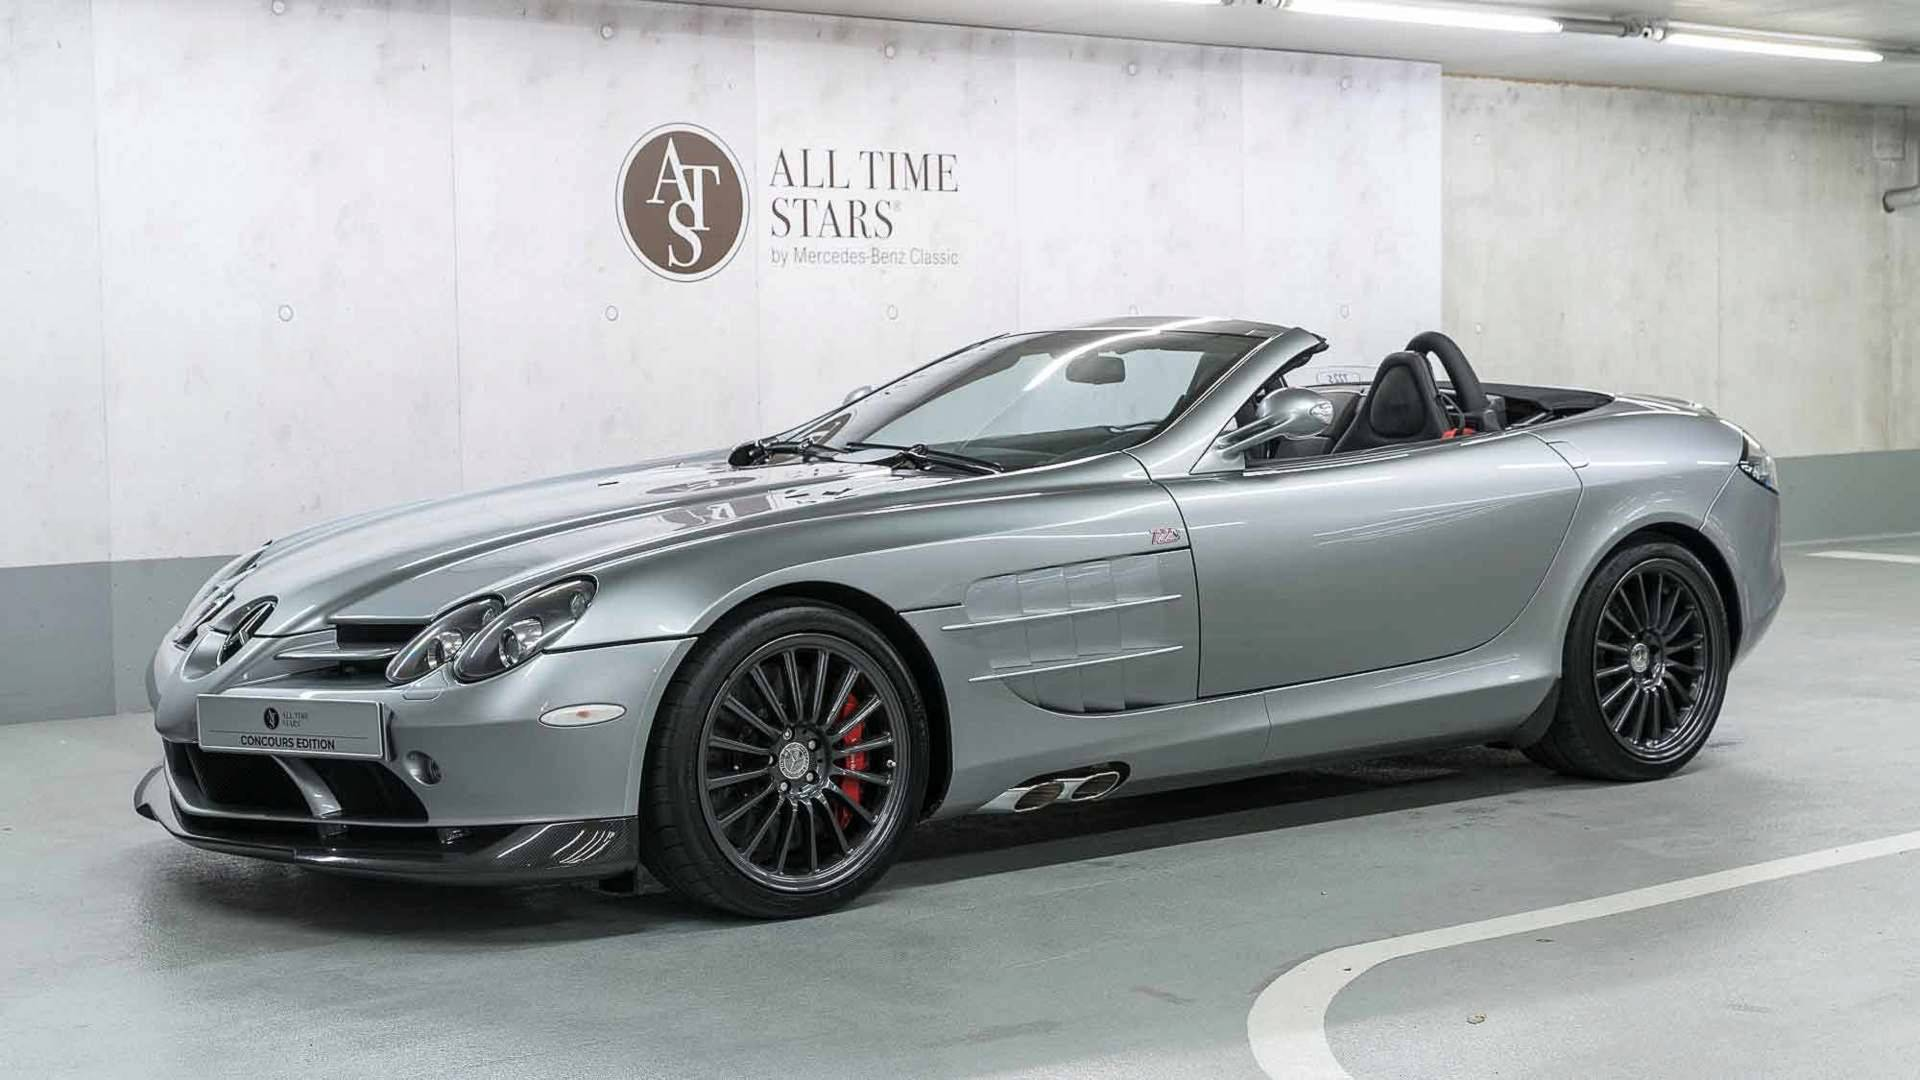 Mercedes Benz Selling Rare Slr Mclaren 722 S Roadster For 1 45m